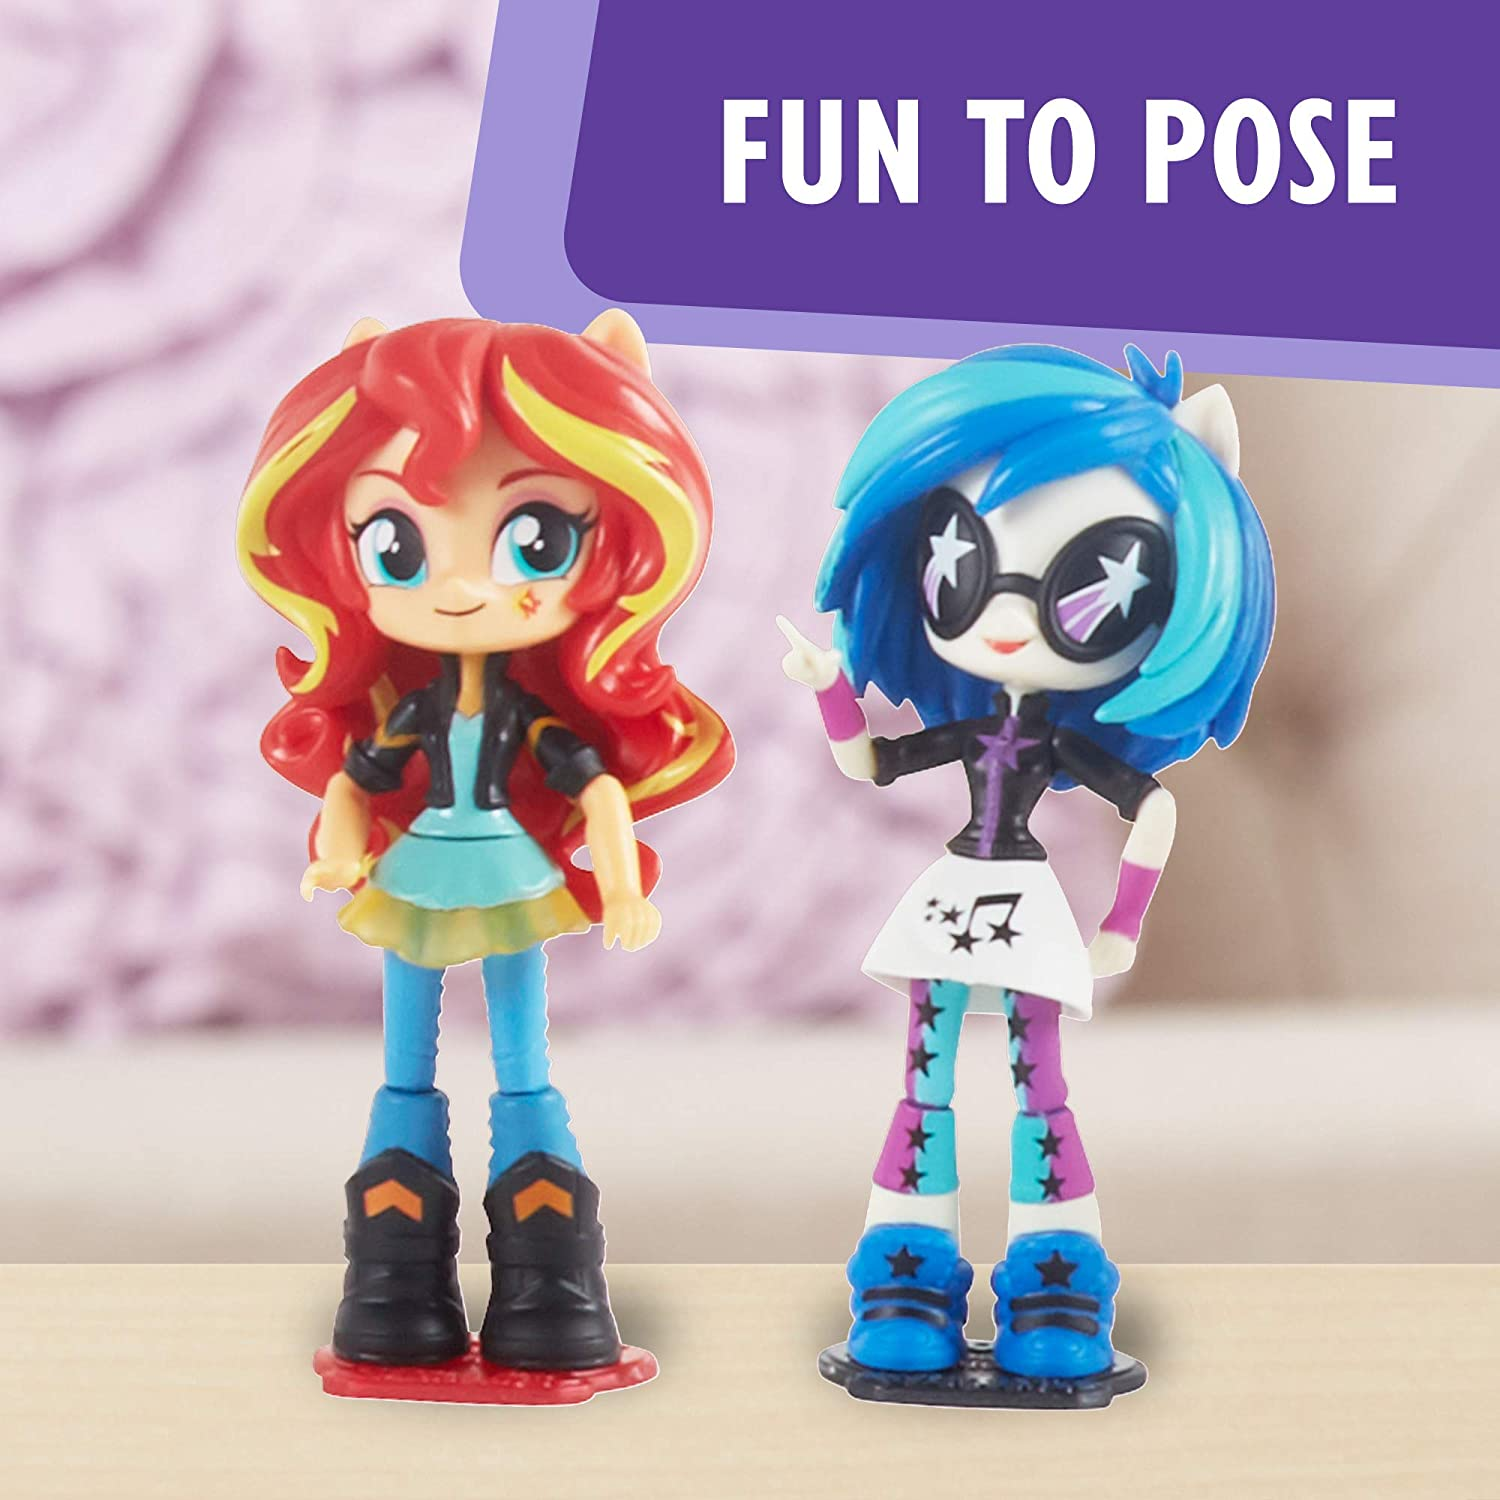 My Little Pony Equestria Girls Toys 6-Pack: Starlight Glimmer Pinkie Pie Daring Do Dazzle Rarity Hasbro and DJ Pon-3 Mini-Dolls Exclusive Import C0410AF1 Sunset Shimmer